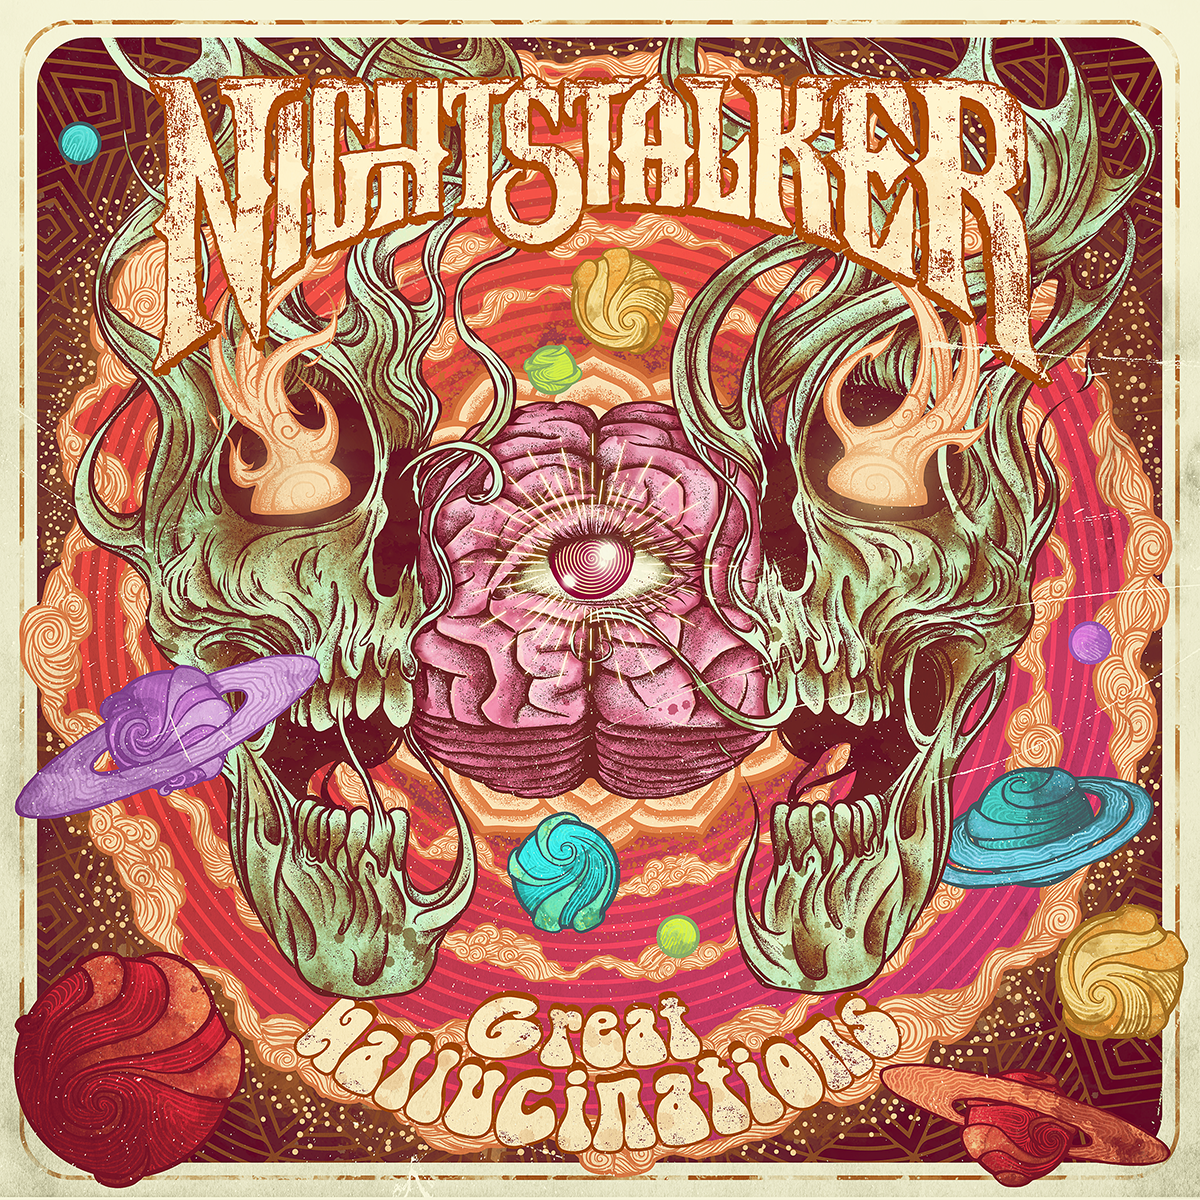 nightstalker great hallucinations